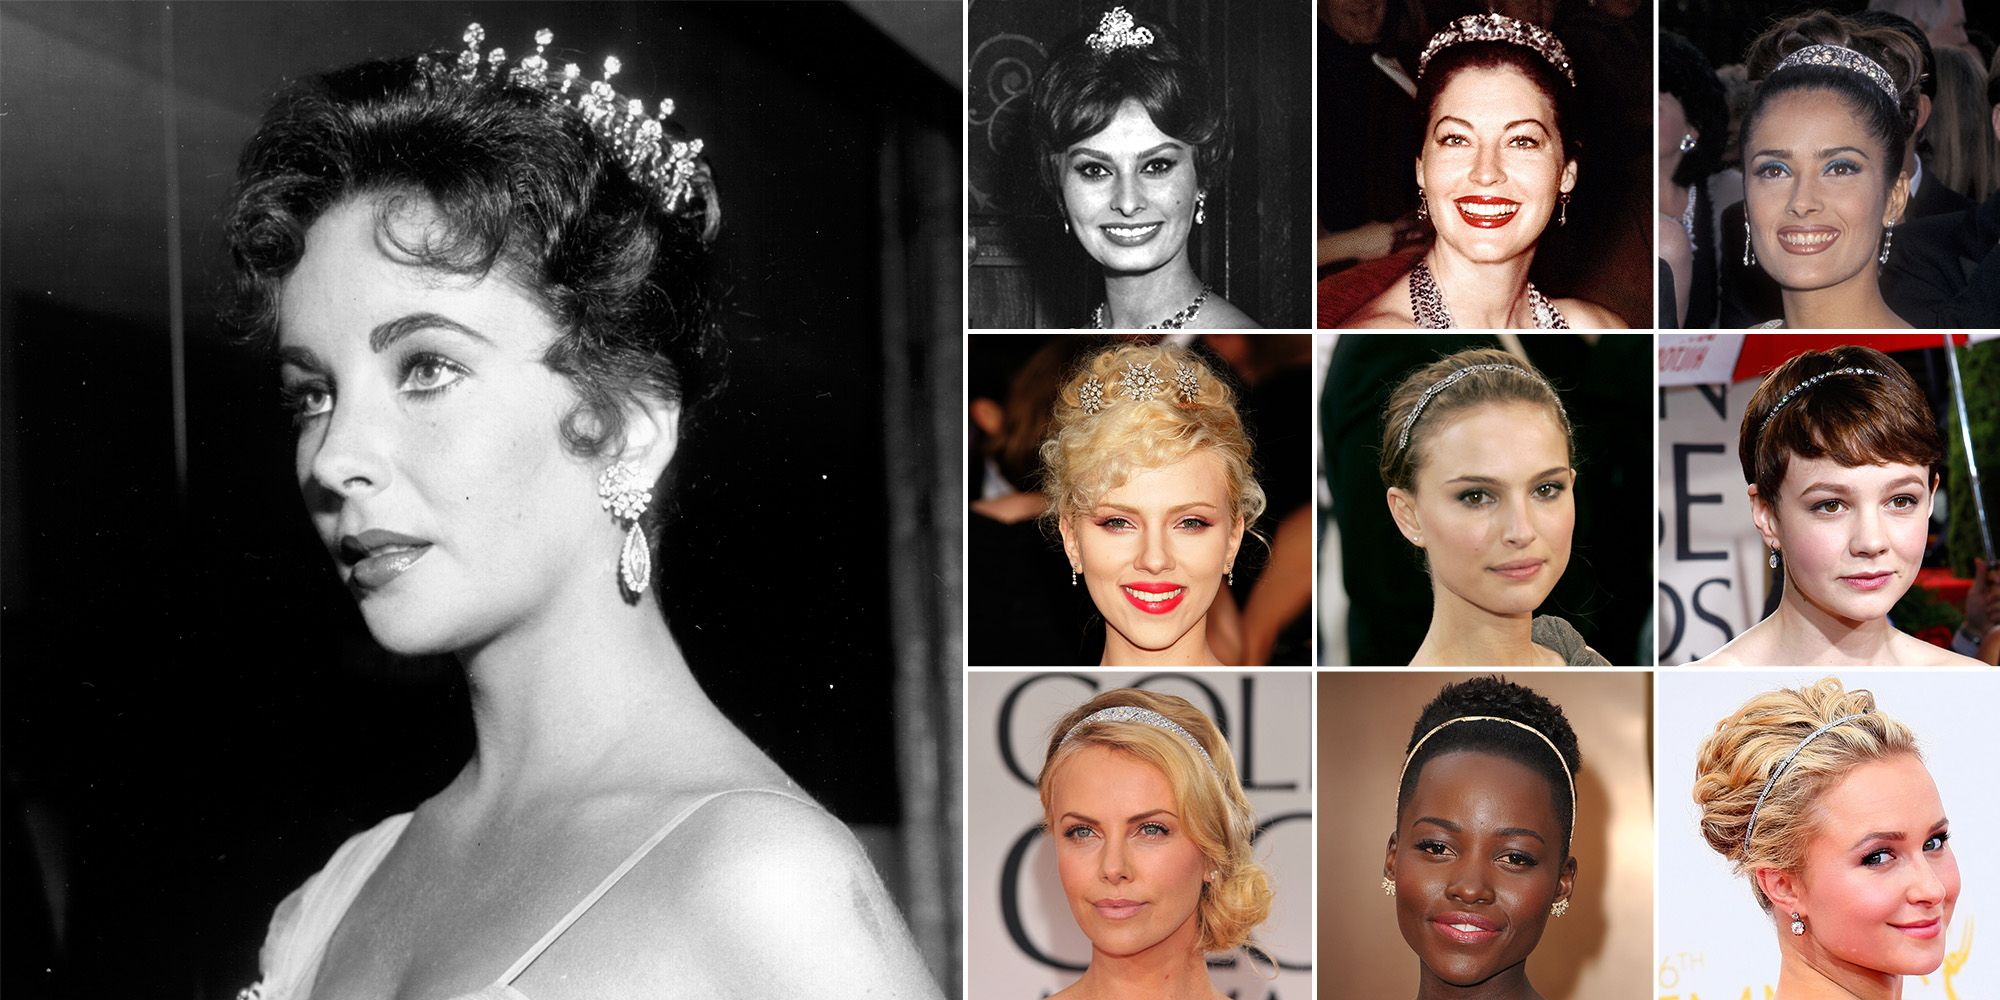 """As the story goes, Taylor's third husband, Mike Todd, gave her this Cartier tiara and declared her """"his queen."""" And the legendary actress wore it for the first time to the Academy Awards in 1957, as if to make it clear that she was bona fide Hollywood royalty. (And she was, no?) Few stars have been so bold as to follow her lead so literally since, but actresses like Lupita Nyong'o, Charlize Theron, and Natalie Portman haveproved that a jeweledheadband makes an understated but equally regal alternative.  <em>From top left:</em>  Sophia Loren at the 30th Annual Academy Awards, 1958  Ava Gardner at the 32nd Annual Academy Awards, 1960  Salma Hayek at the 69th Annual Academy Awards, 1997  Scarlett Johansson at the 77th Annual Academy Awards, 2005  Natalie Portman at the 77th Annual Academy Awards, 2005  Carey Mulligan at the 67th Annual Golden Globe Awards, 2009  Charlize Theron at the 69th Annual Golden Globe Awards, 2012  Lupita Nyong'o at the 86th Annual Academy Awards, 2014  Hayden Panettiere at the 66th Annual Emmy Awards, 2014"""